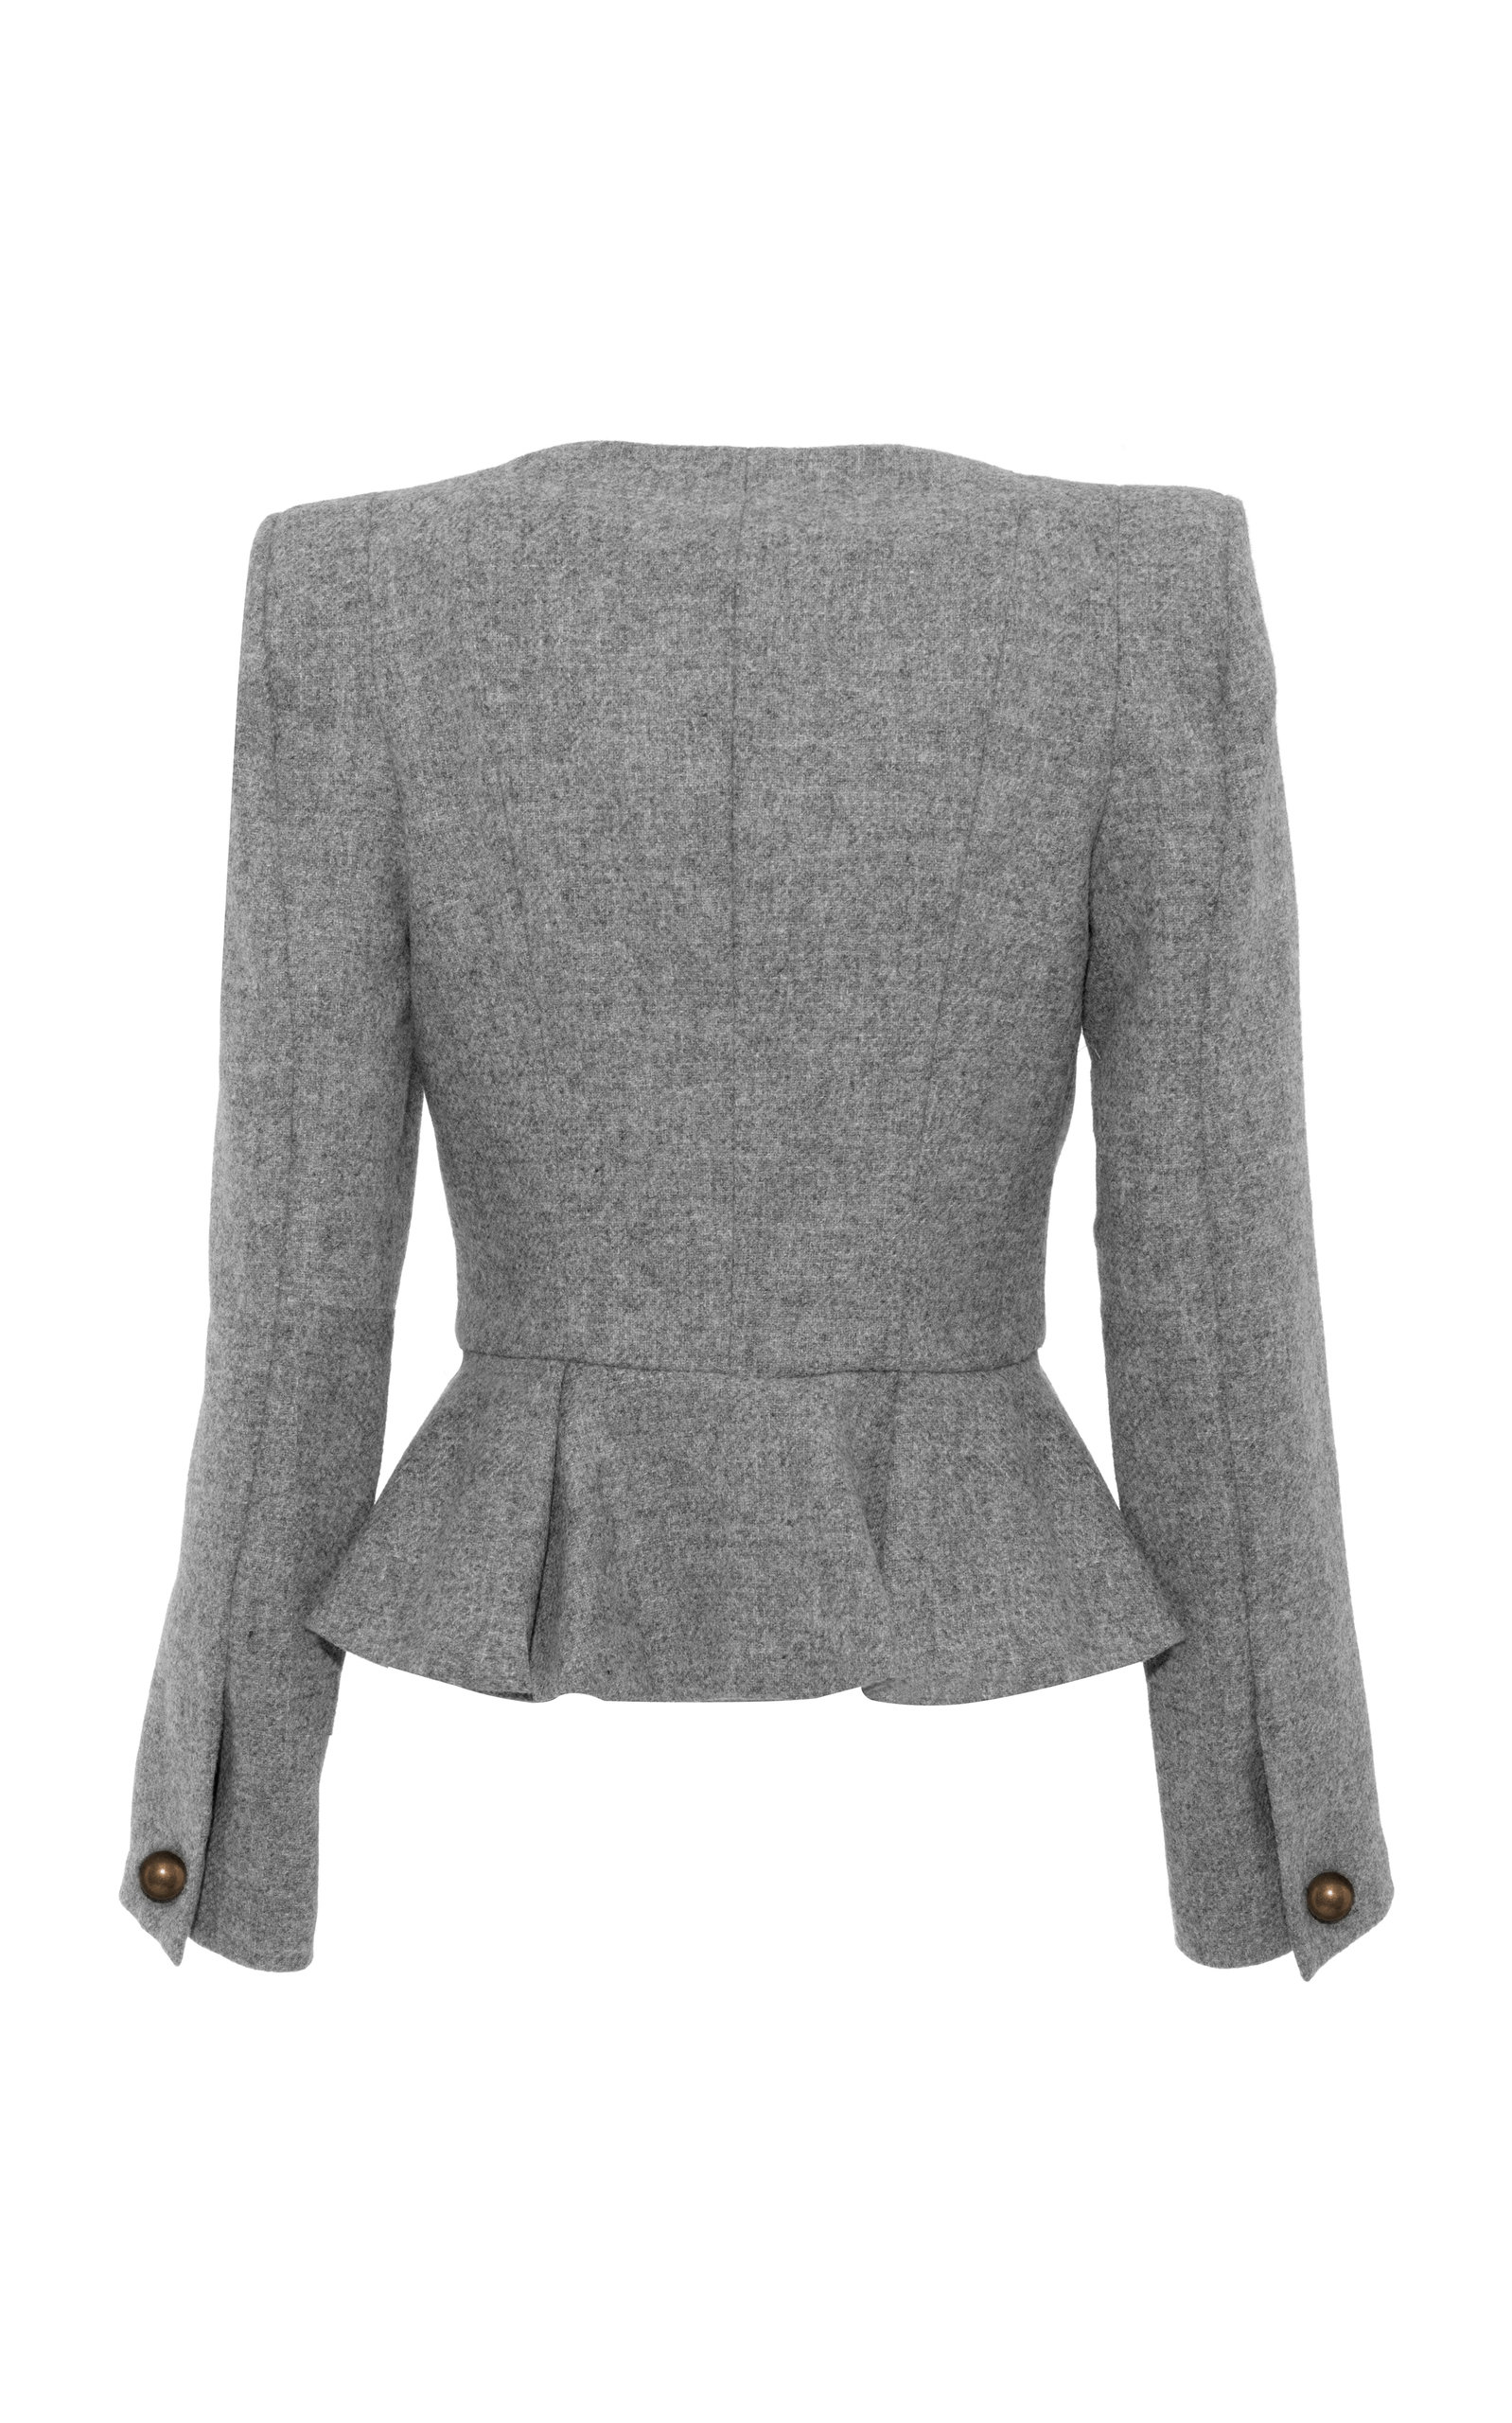 Moda Operandi | Sharp Short Tweed Jacket by Anna Mason